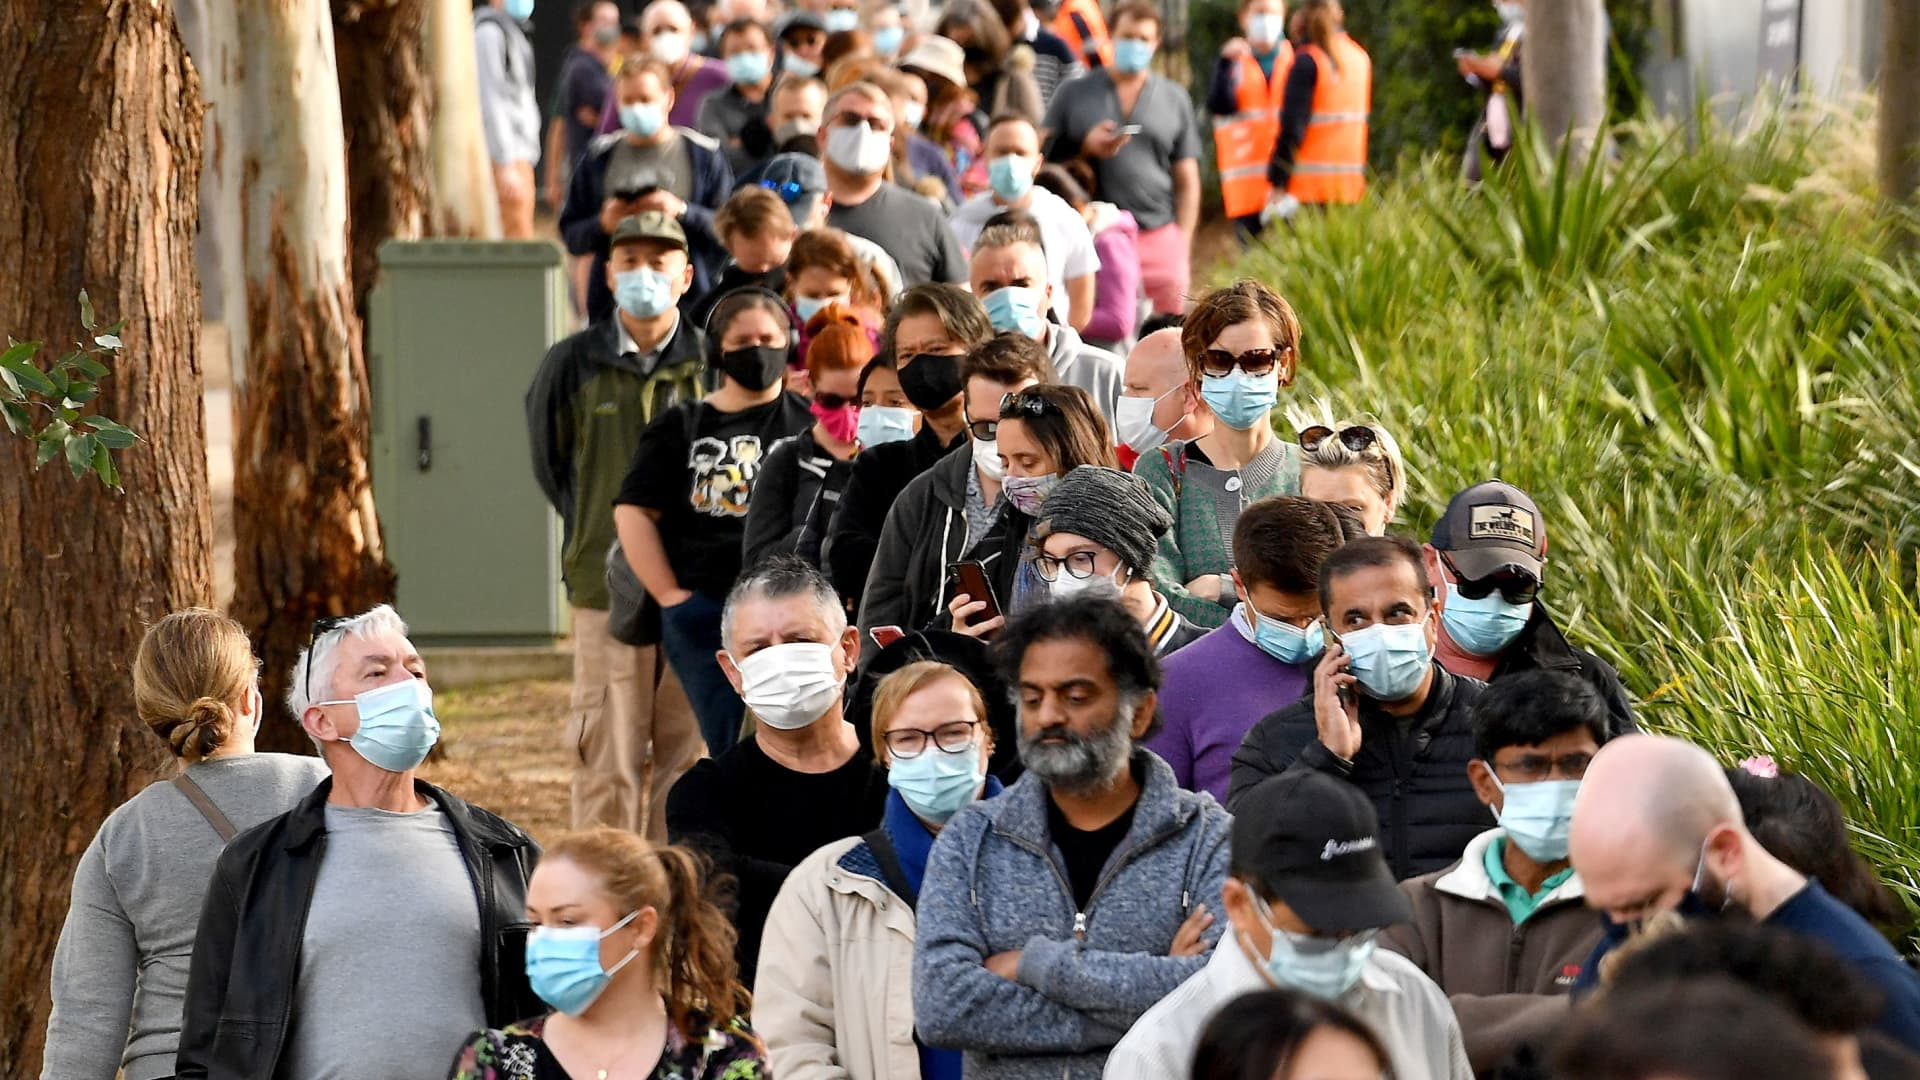 People queue outside a vaccination center in Sydney on June 24, 2021, as residents were largely banned from leaving the city to stop a growing outbreak of the highly contagious Delta Covid-19 variant spreading to other regions.